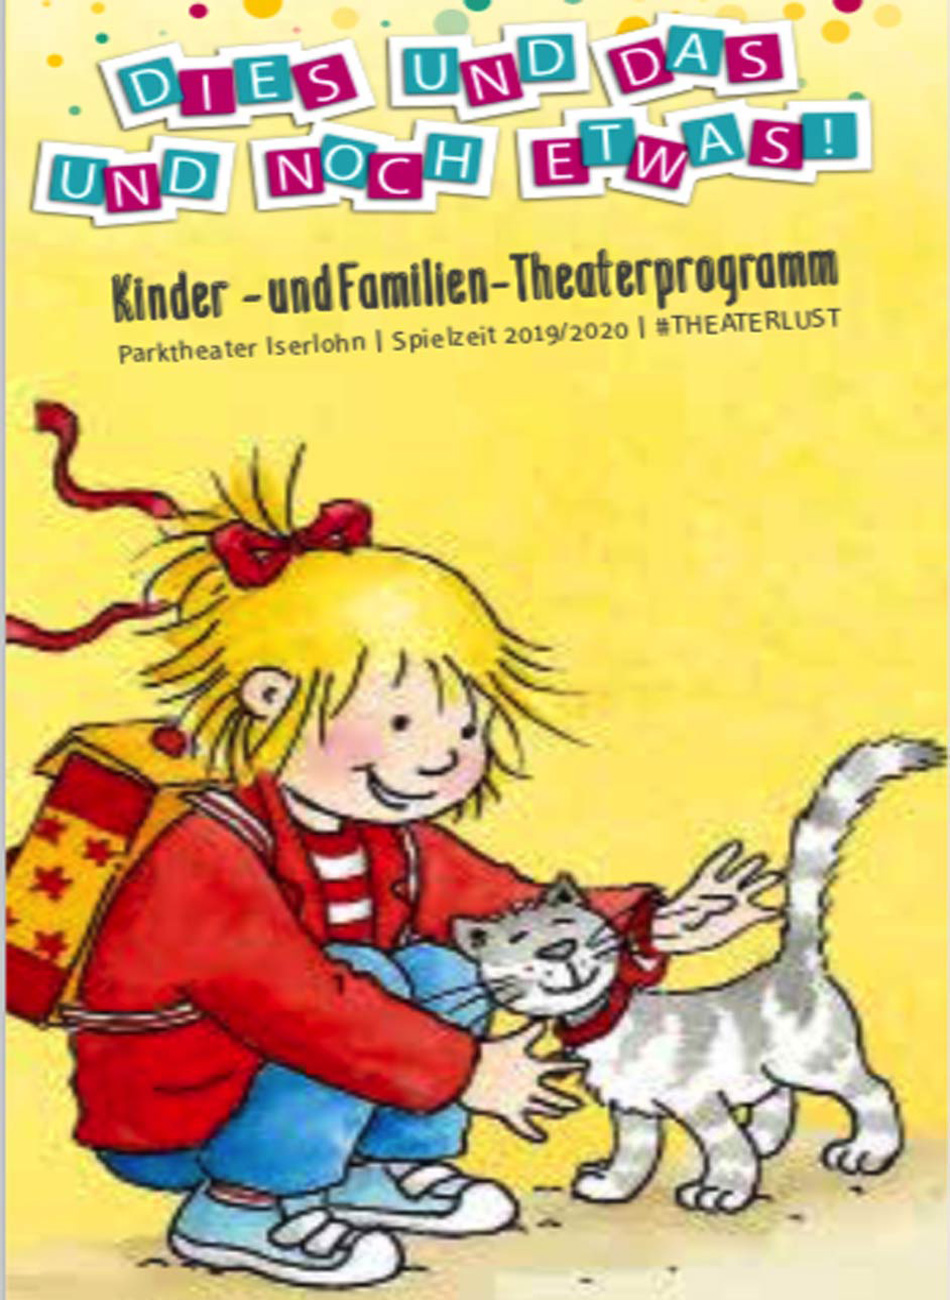 Kinder Theater